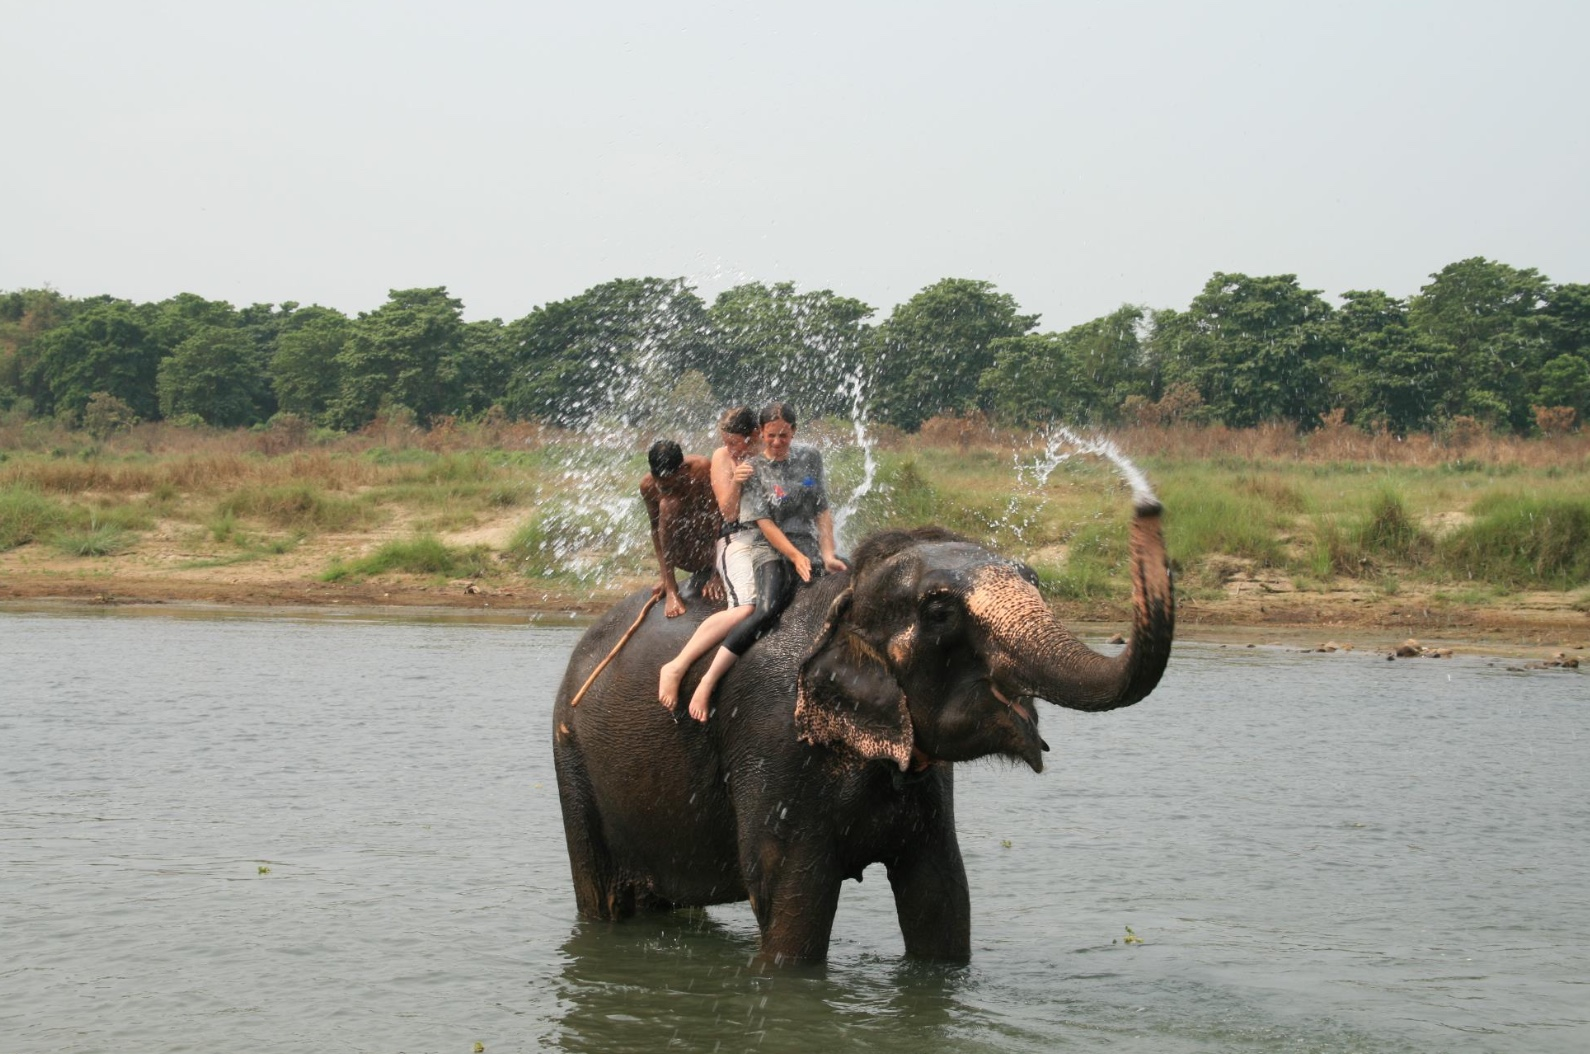 Elephant riding on a gap year in Asia